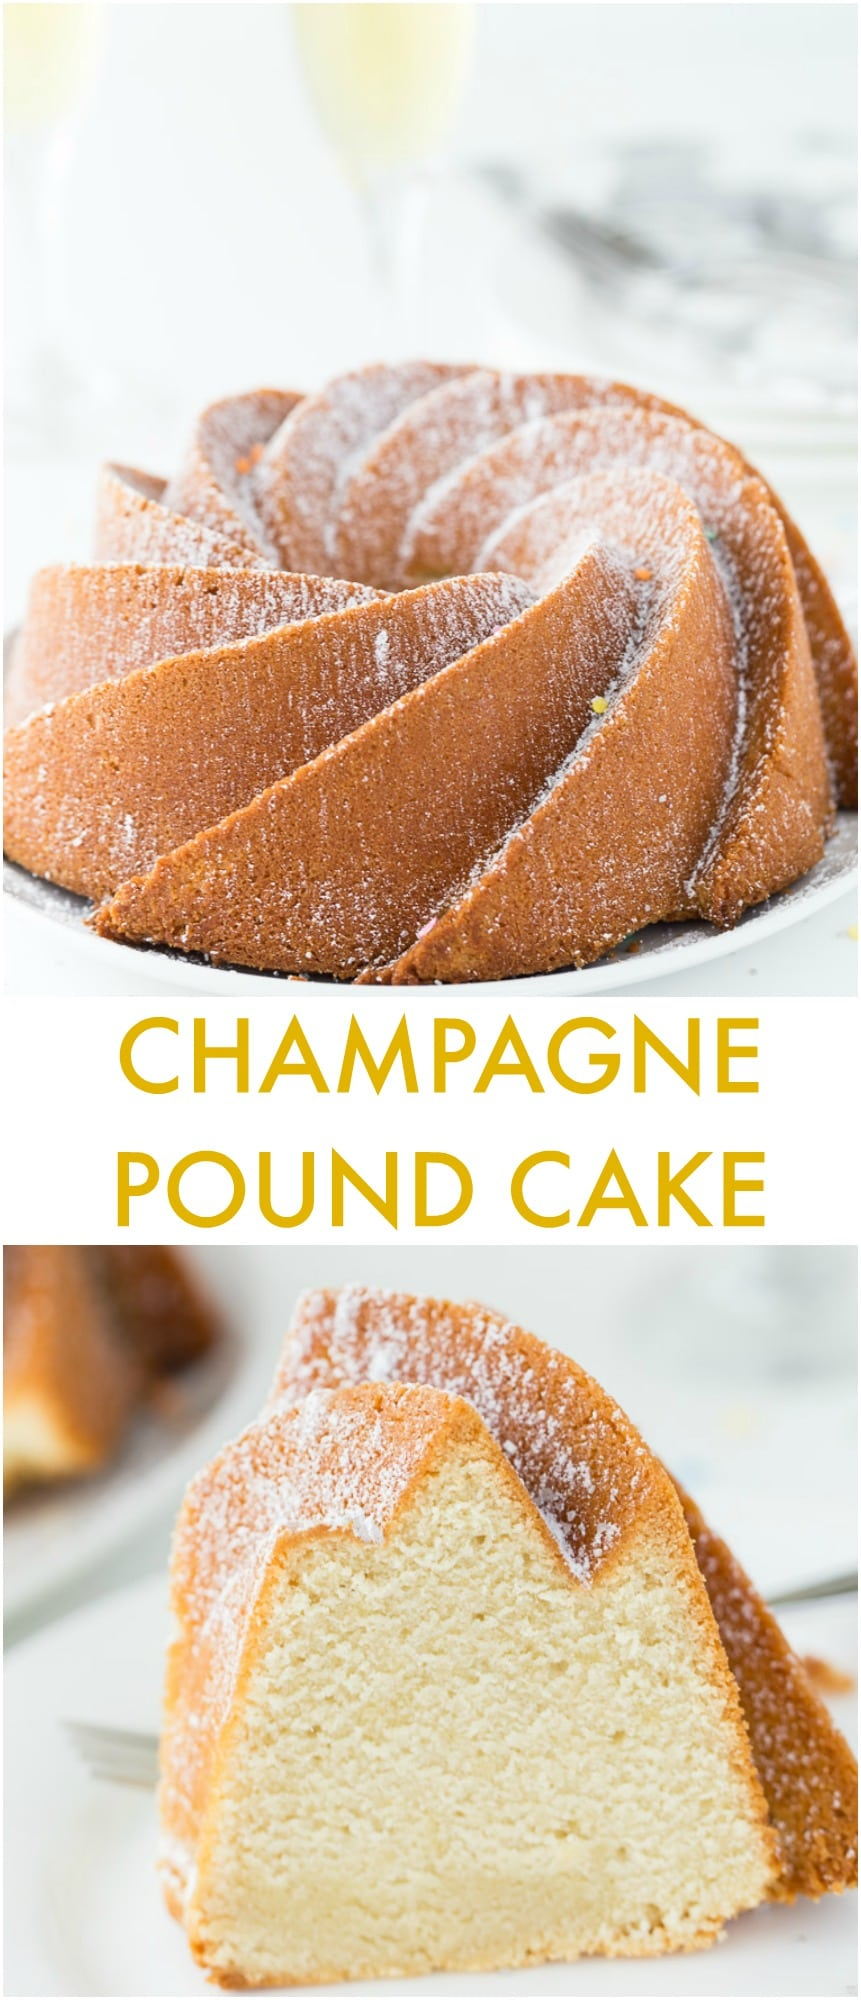 An easy moist and crumbly champagne pound cake recipe that is perfect for any celebration from New Year's Eve to birthdays.